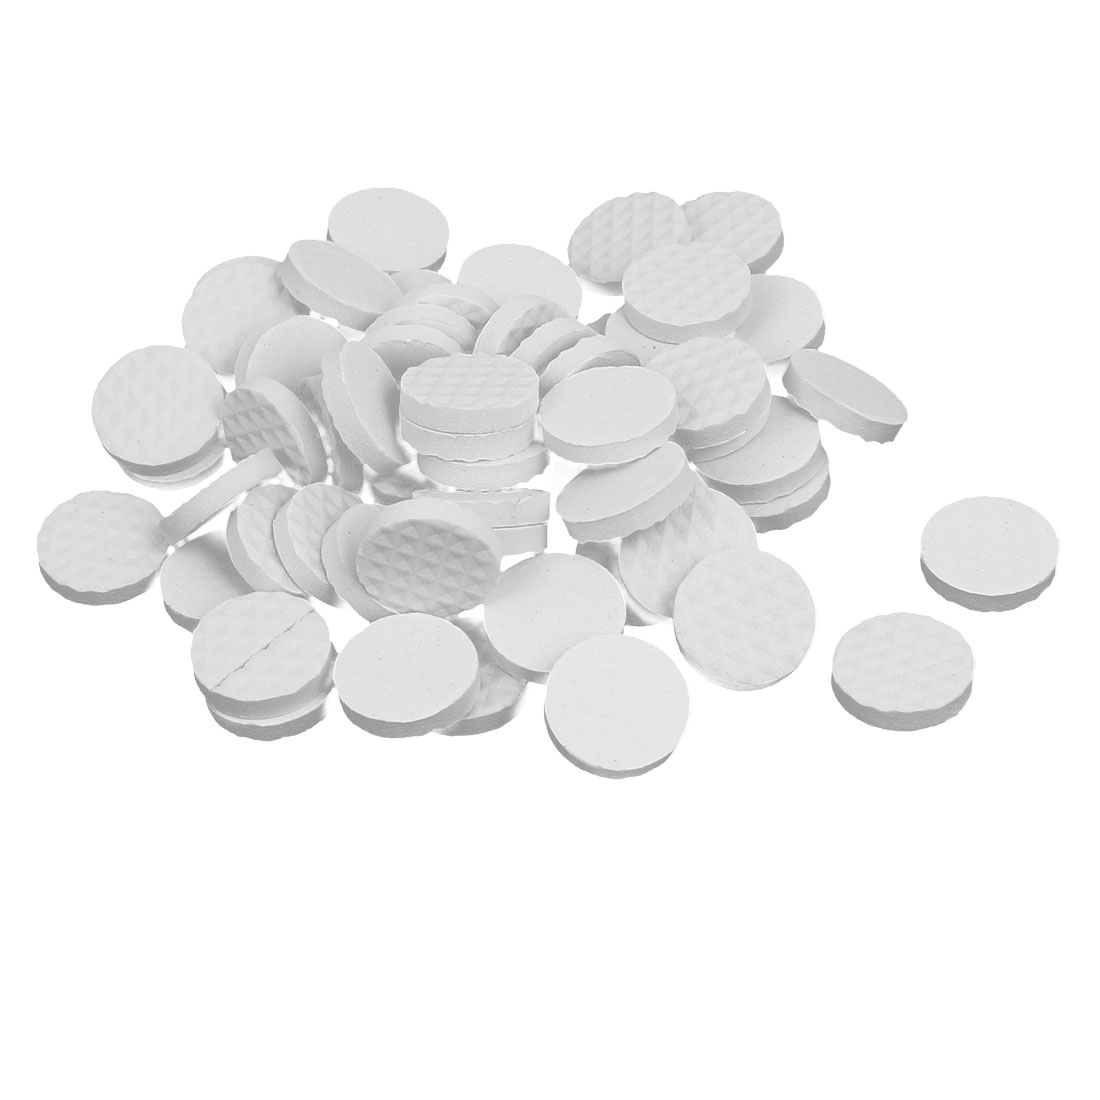 18mm Dia Rubber Self Adhesive Anti-Skid Furniture Protection Pads White 60pcs